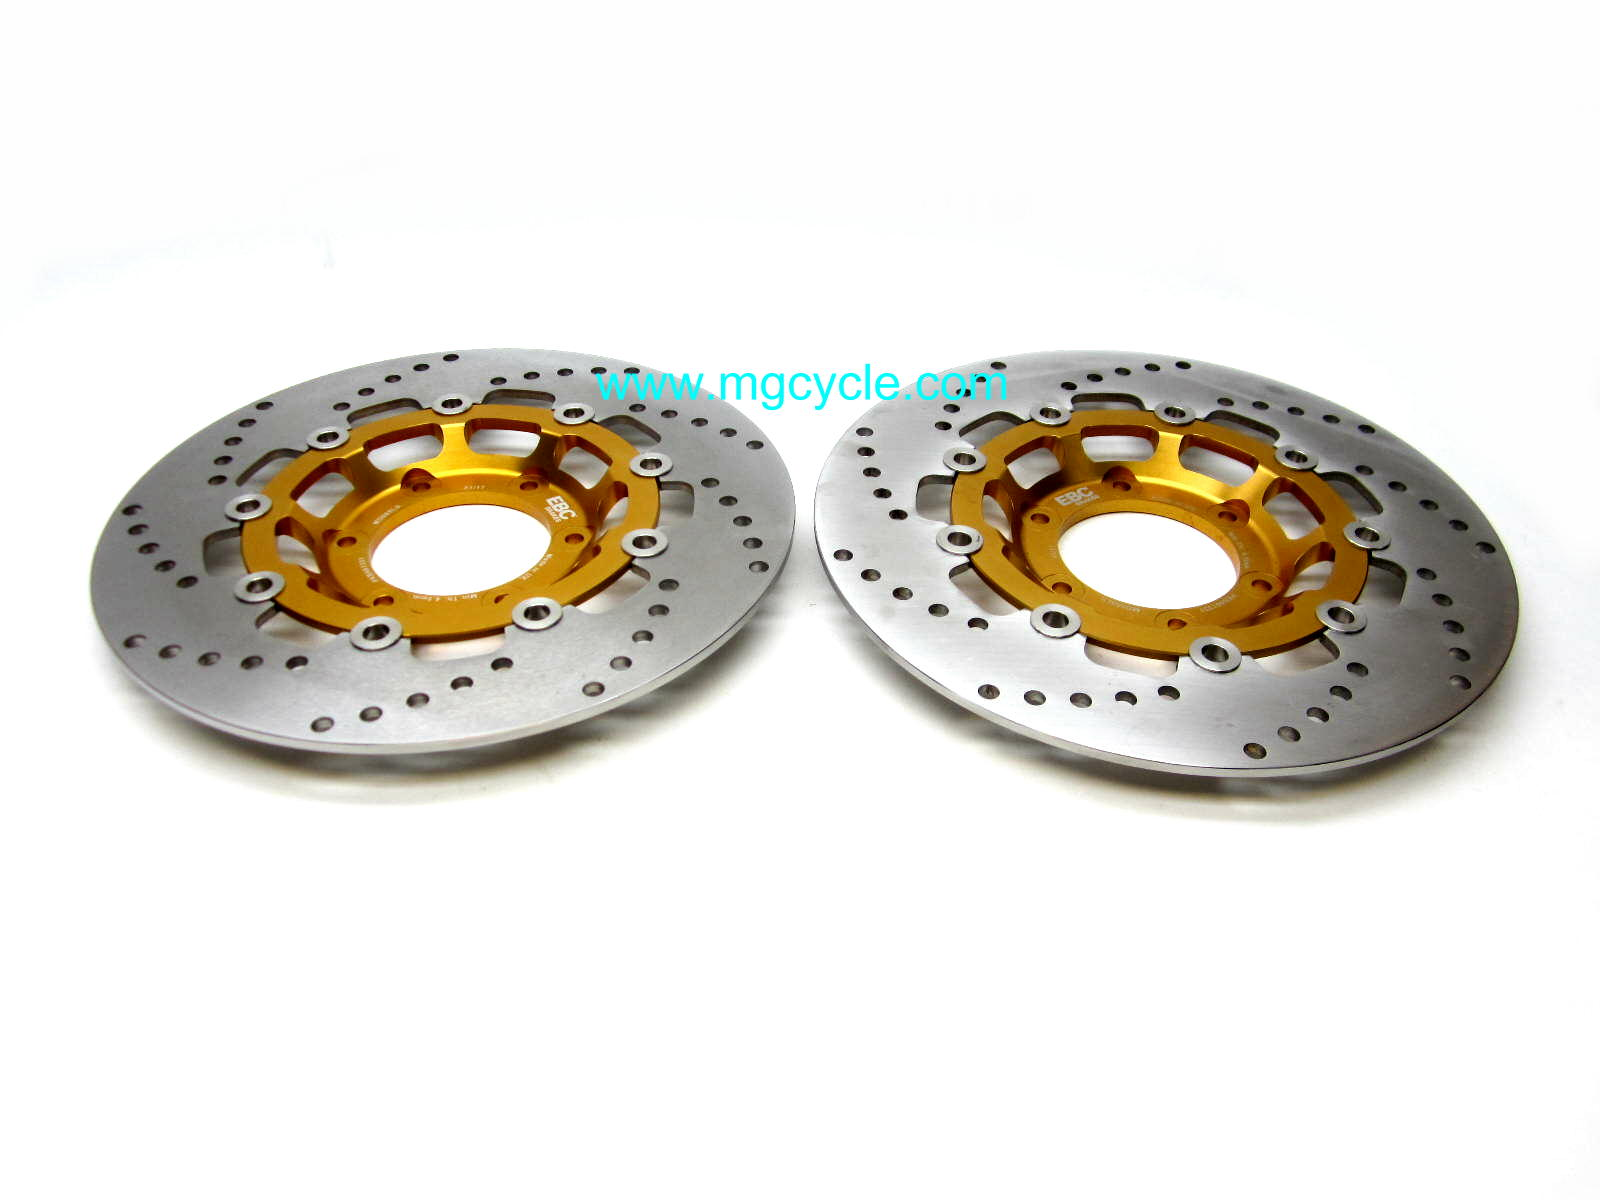 EBC 300mm Pro-lite full floating brake disks, pair